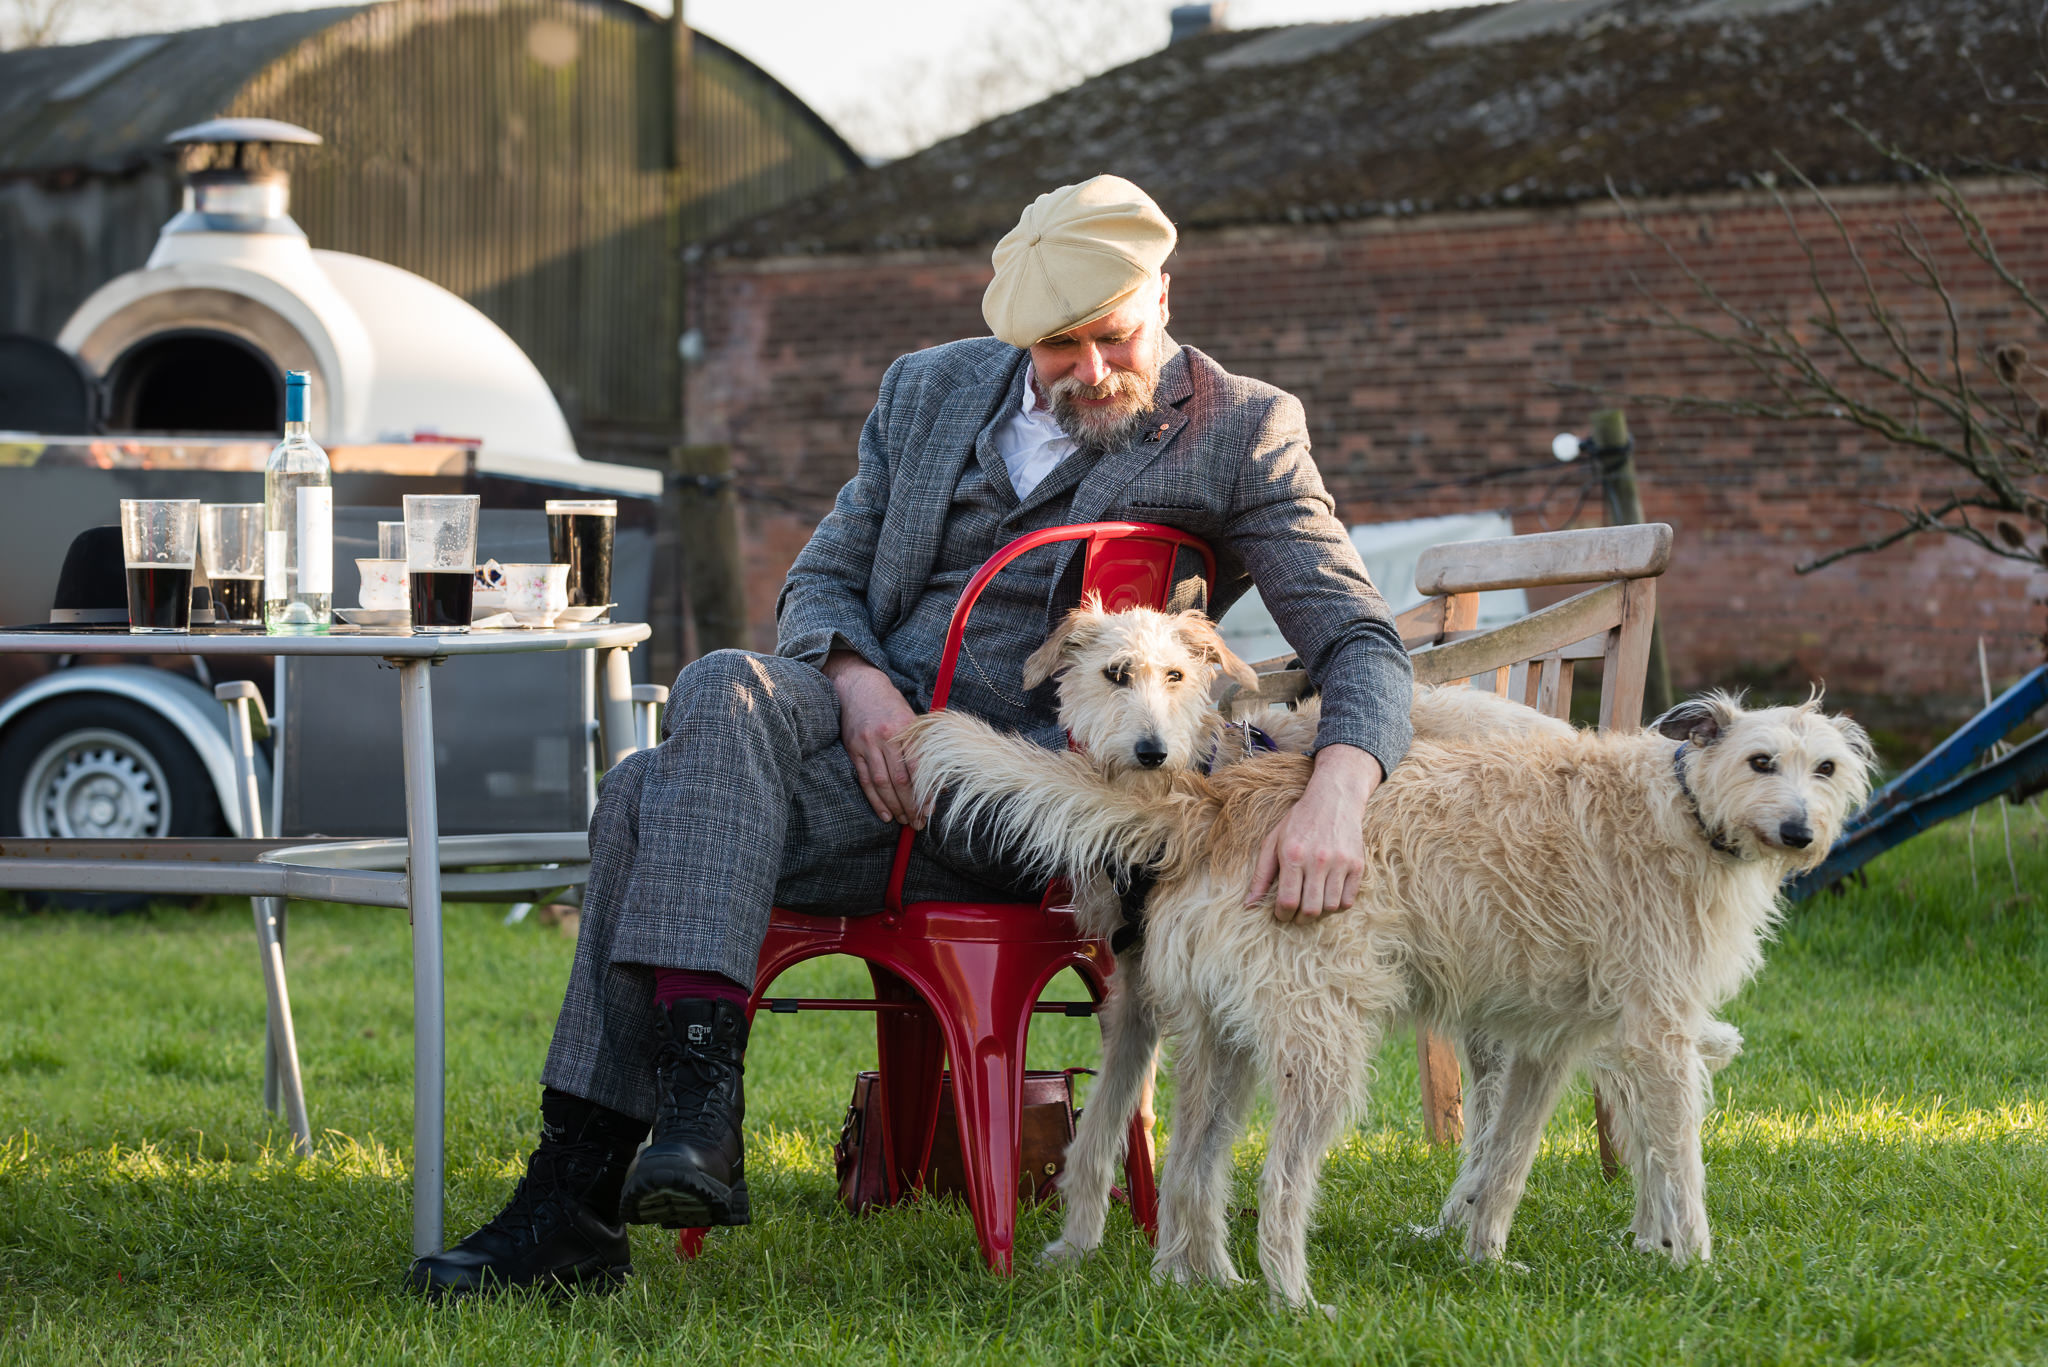 Wedding guest and his dog